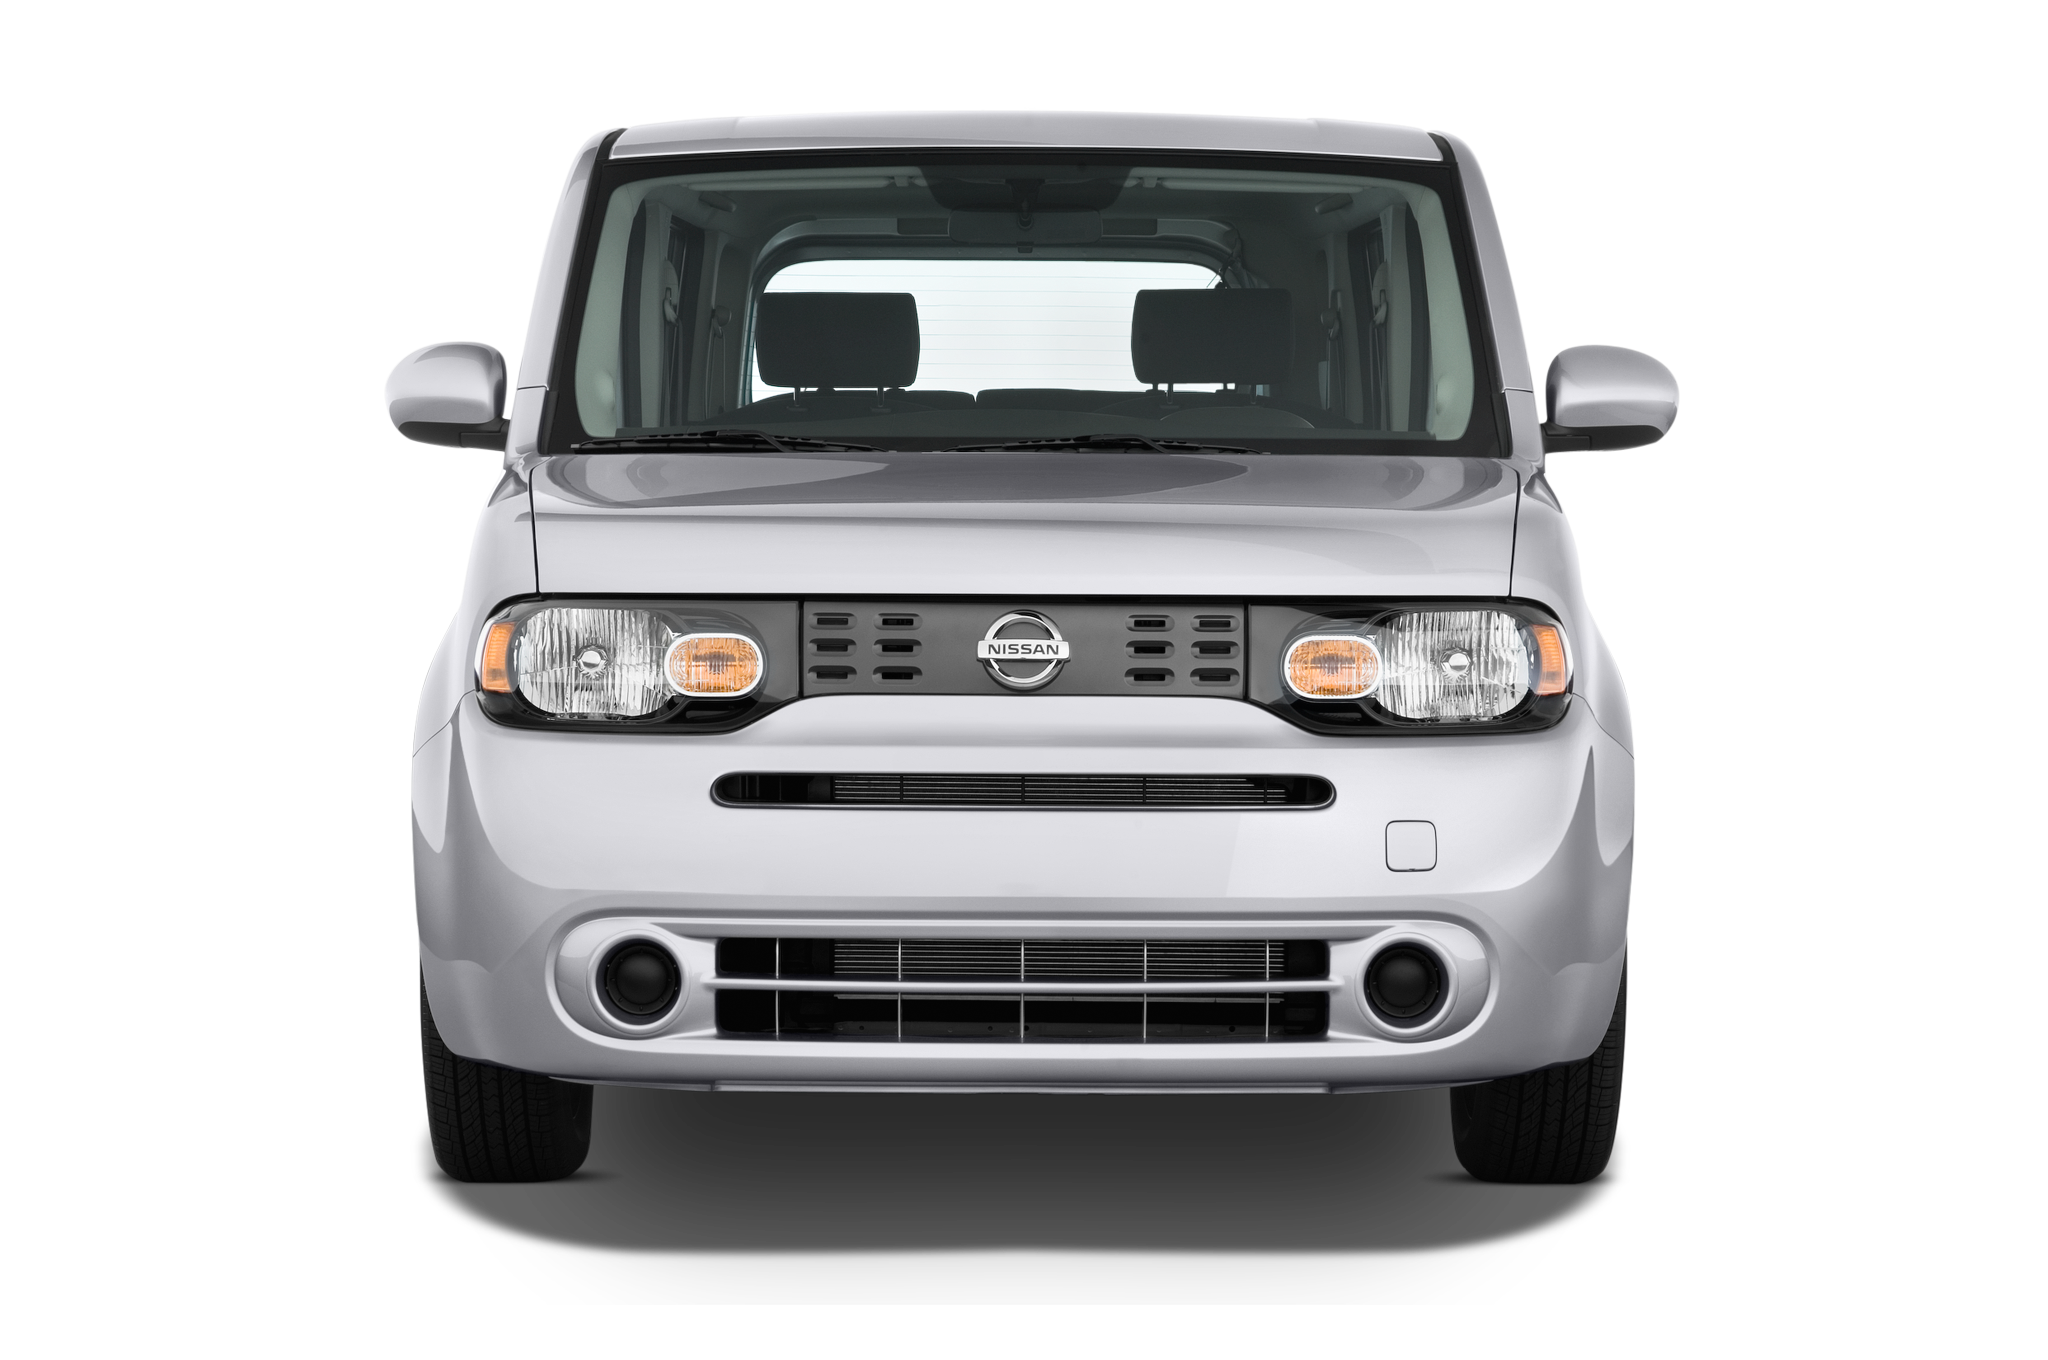 2014 Nissan Cube Base Price Rises 20 To 17 570